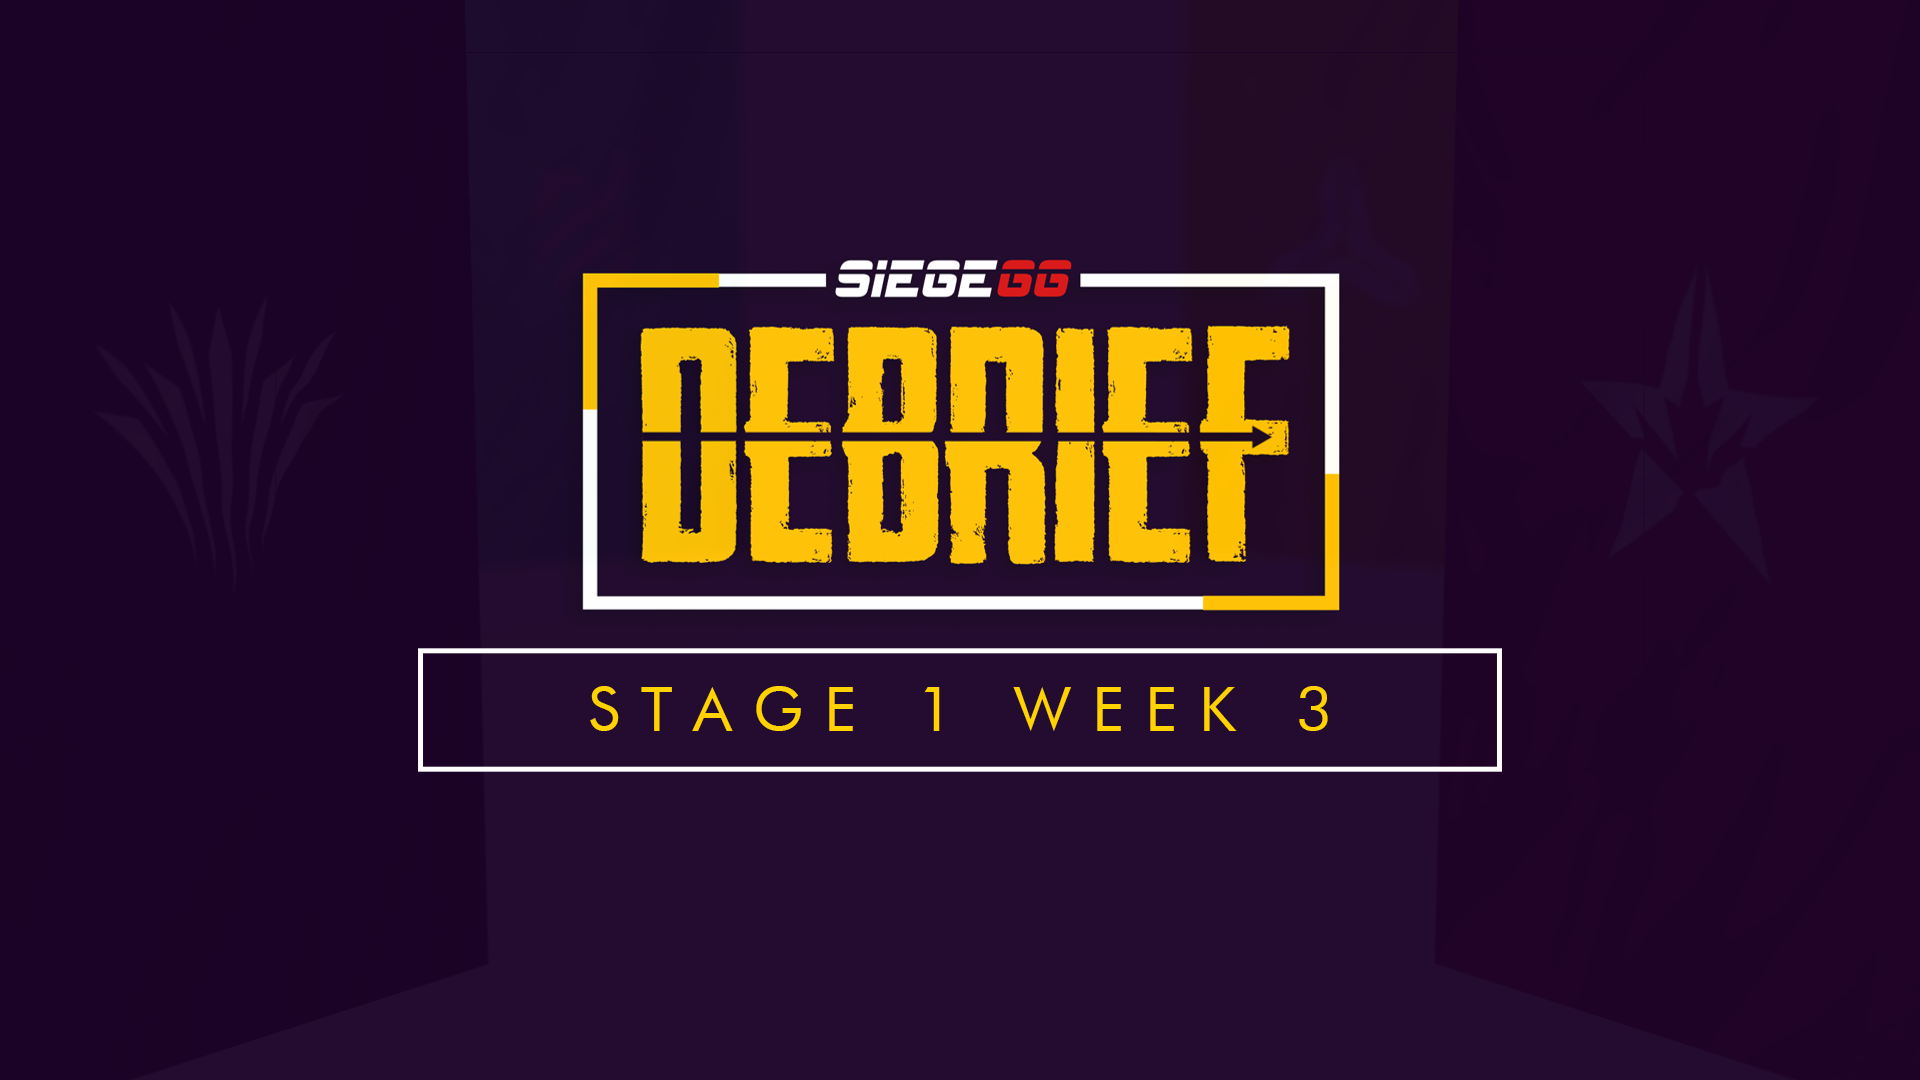 SiegeGG Debrief | James Bond, Ace Thievery, and R6 Events